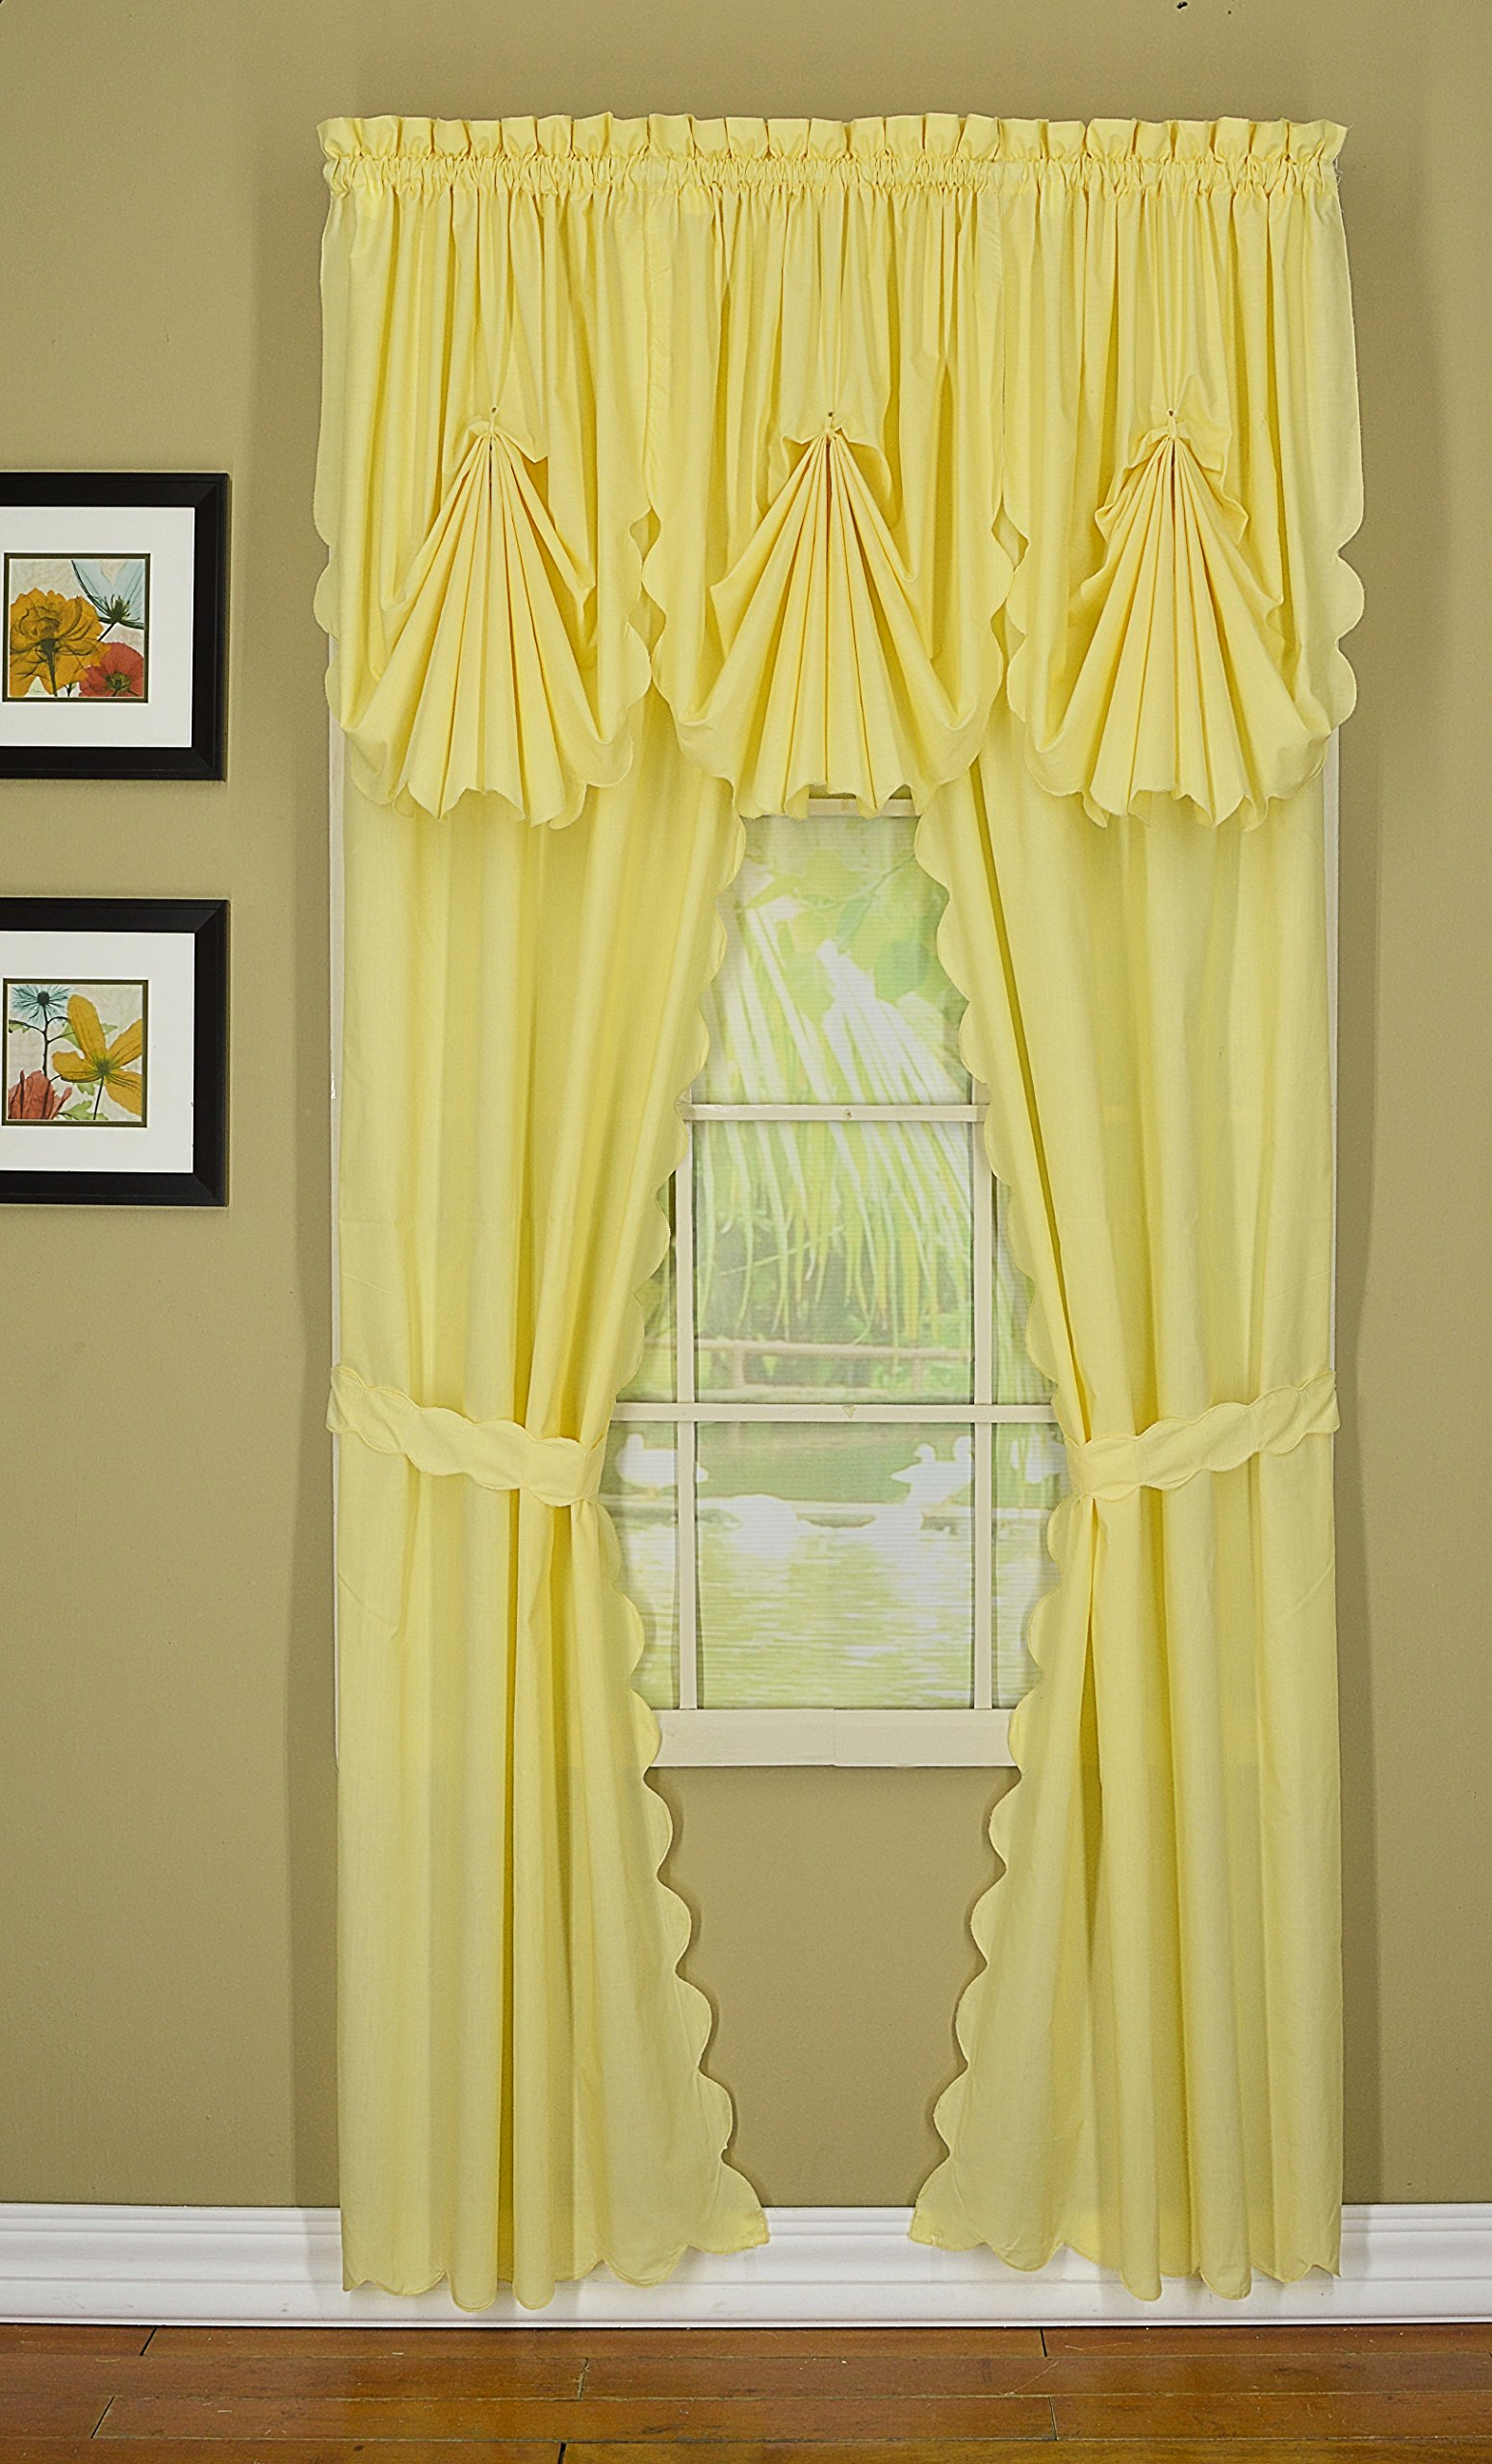 Today's Curtain CA2003K Orleans 72'' Panel Pair with Tiebacks Tambour Scallop Edge Curtain, Buttercup, 60'' W x 72'' L/TB